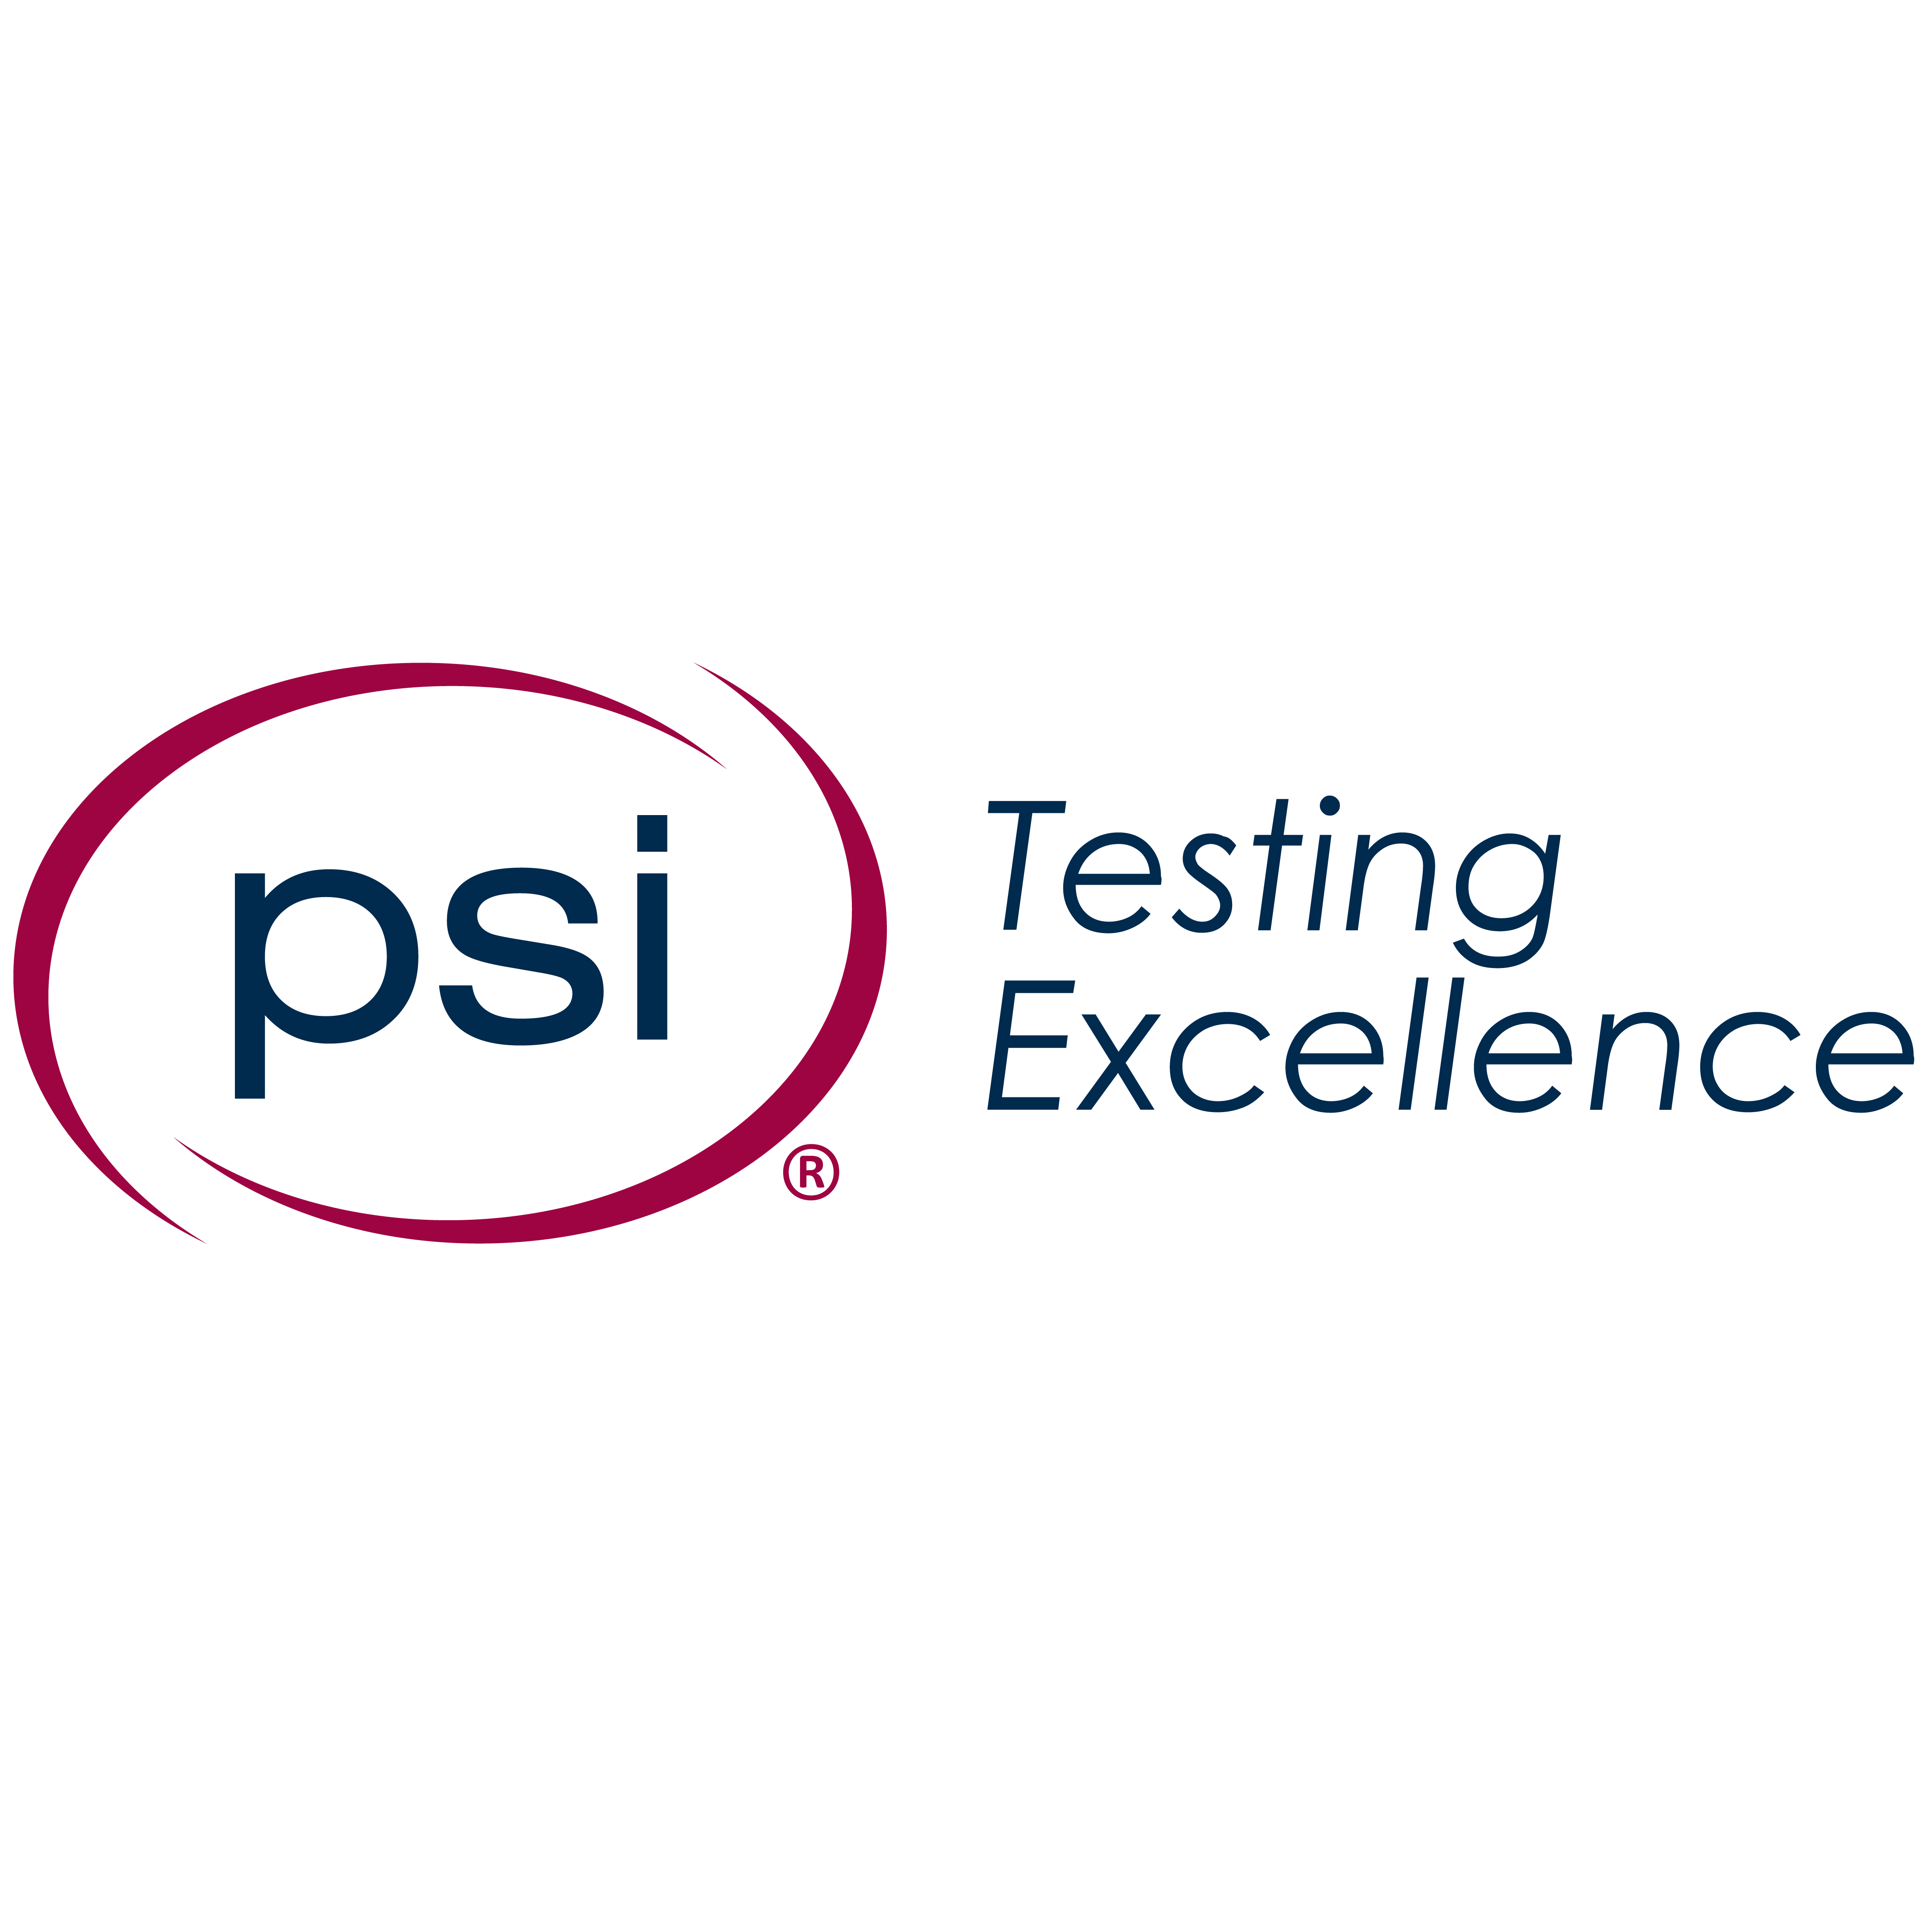 PSI | Testing Excellence